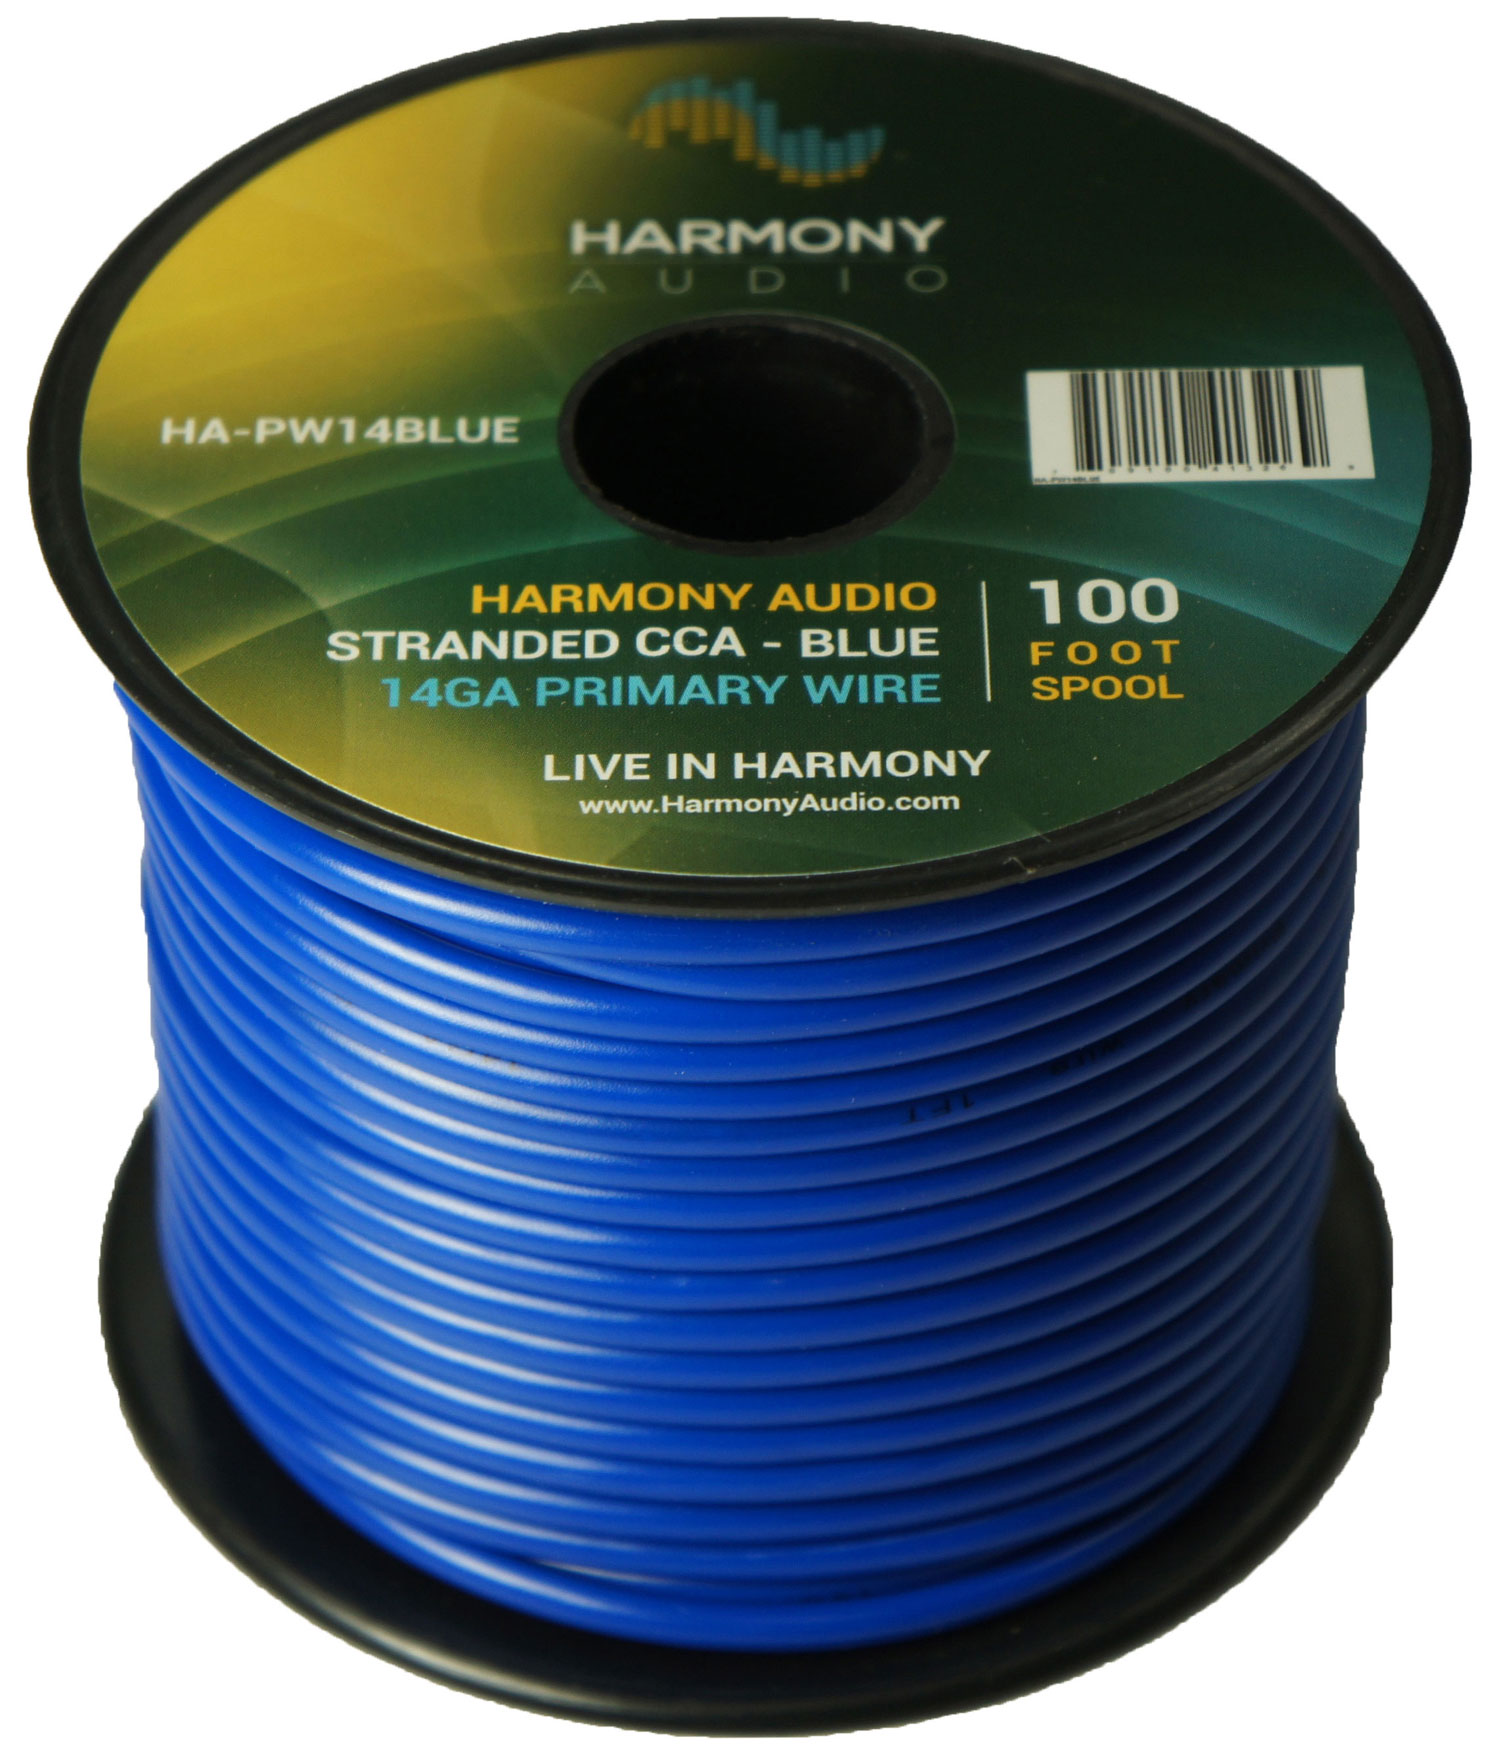 hight resolution of harmony audio ha pw14blue primary single conductor 14 gauge blue power or ground wire roll 100 feet cable for car audio trailer model train remote